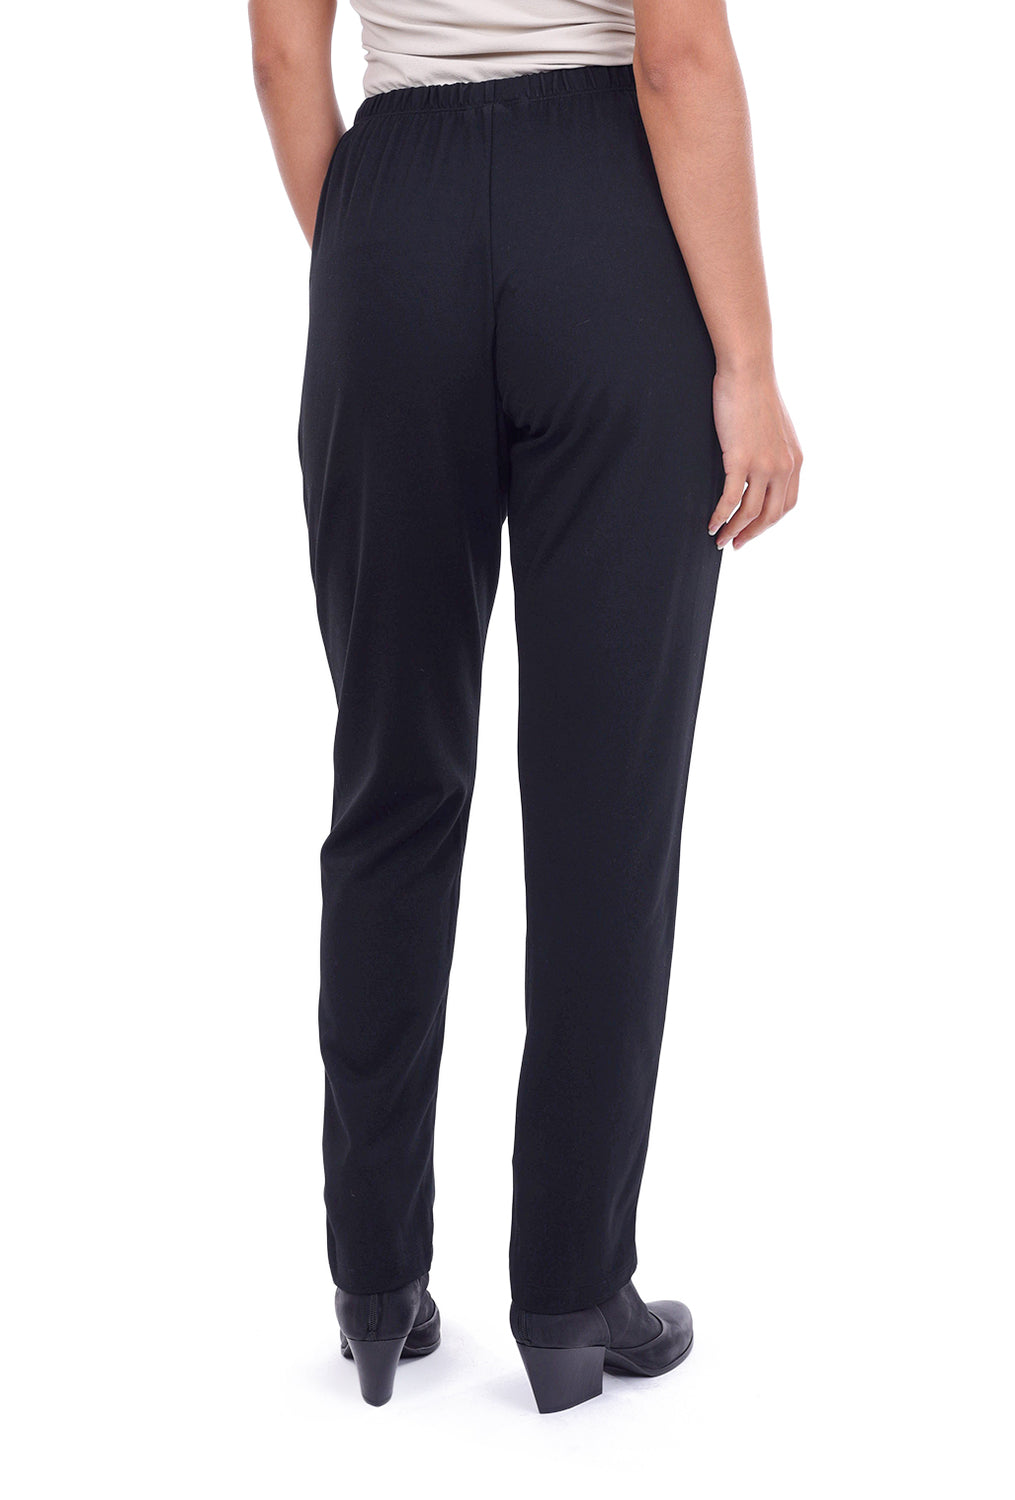 Bryn Walker Long Sunday Pants, Black